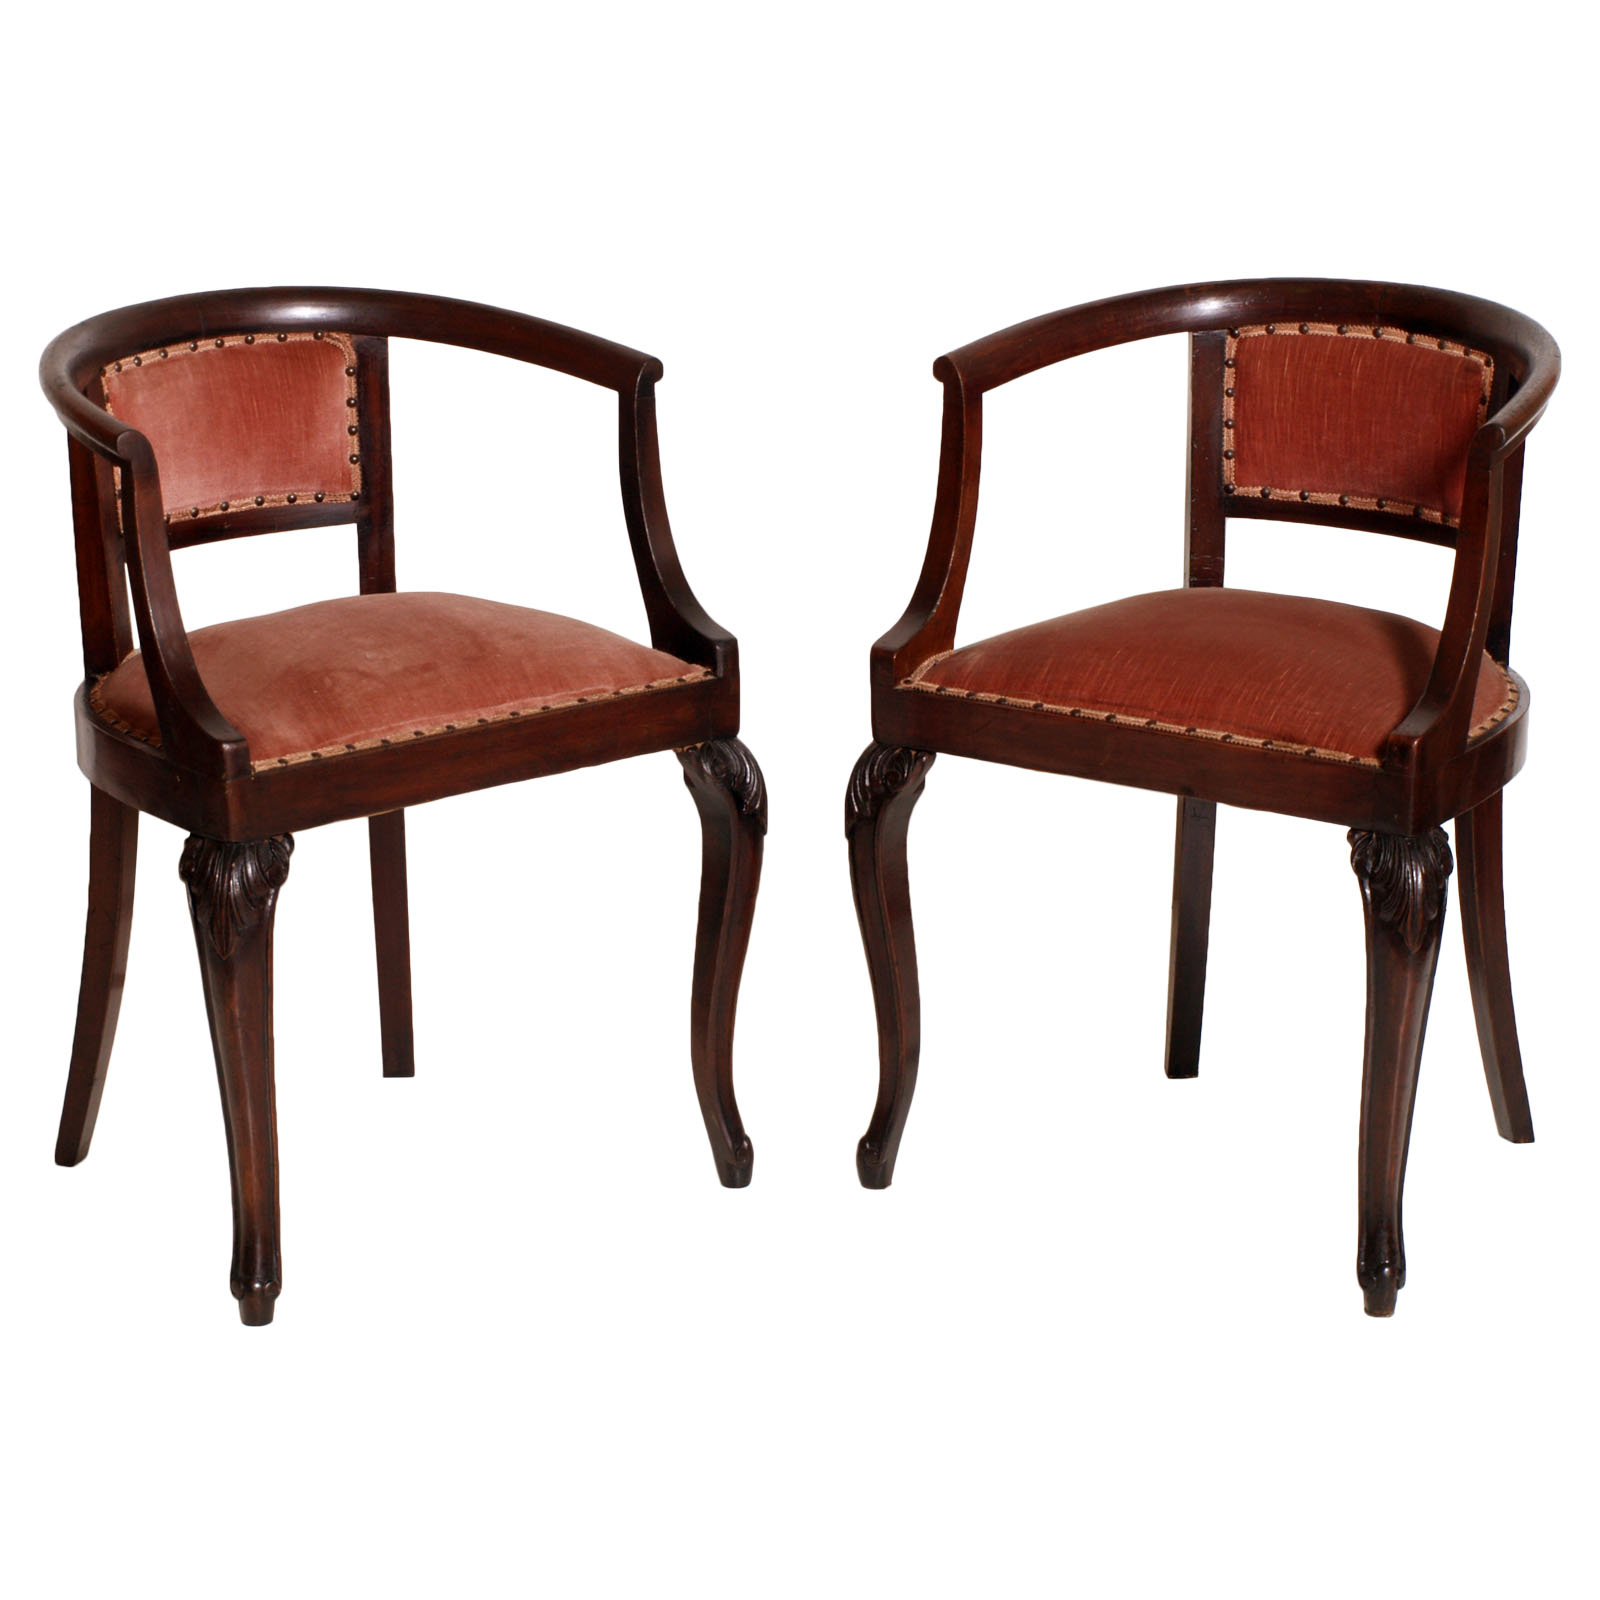 ANTIQUE LIBERTY PAIR OF CHAIRS POLTRONCINE COPPIA SEDIE POZZETTO IN ...